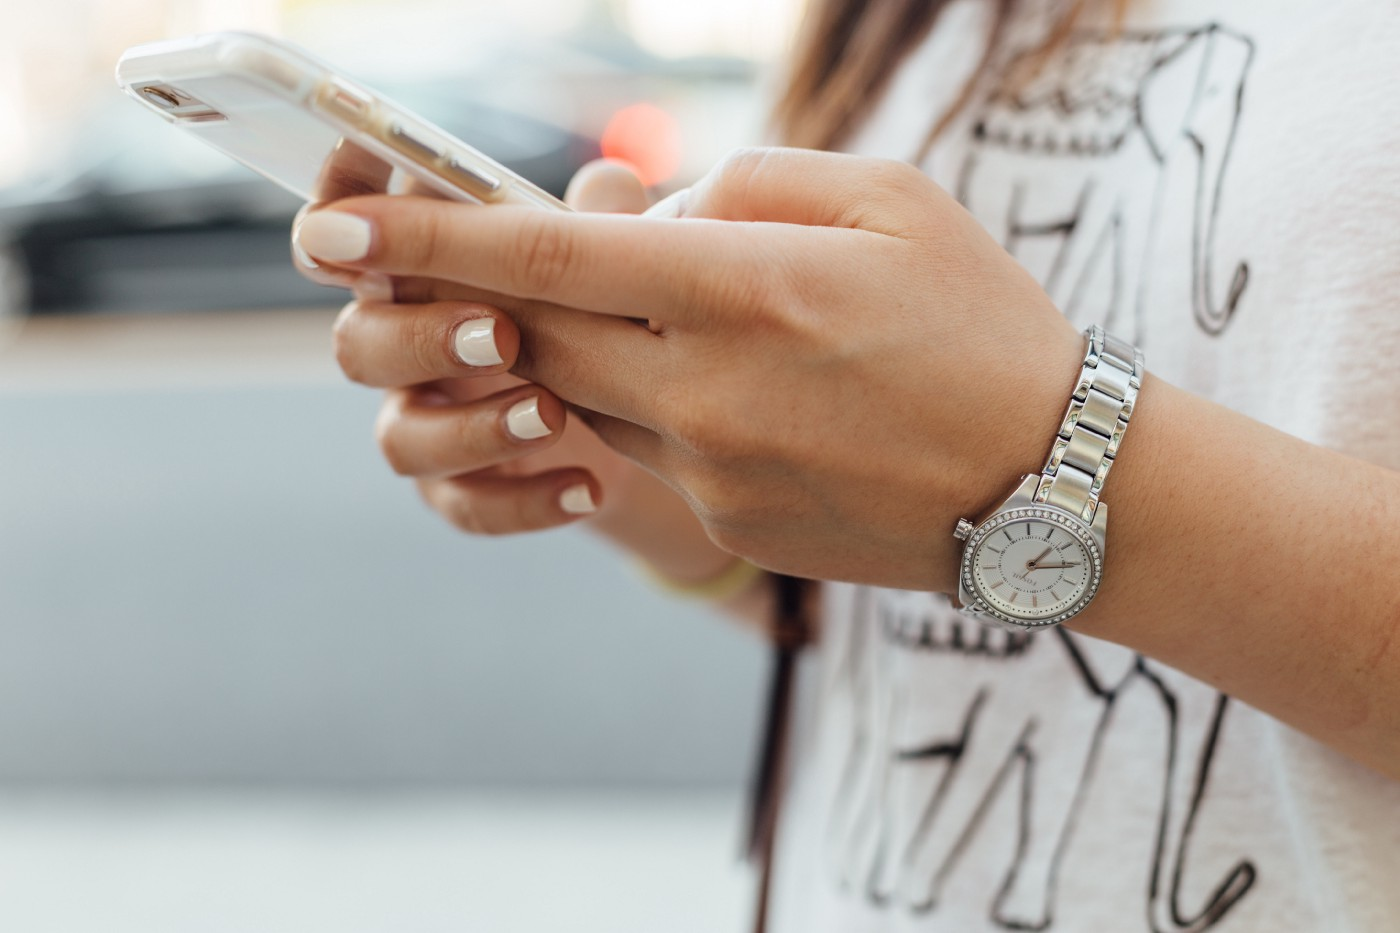 A young woman looking at a phone in her hands.